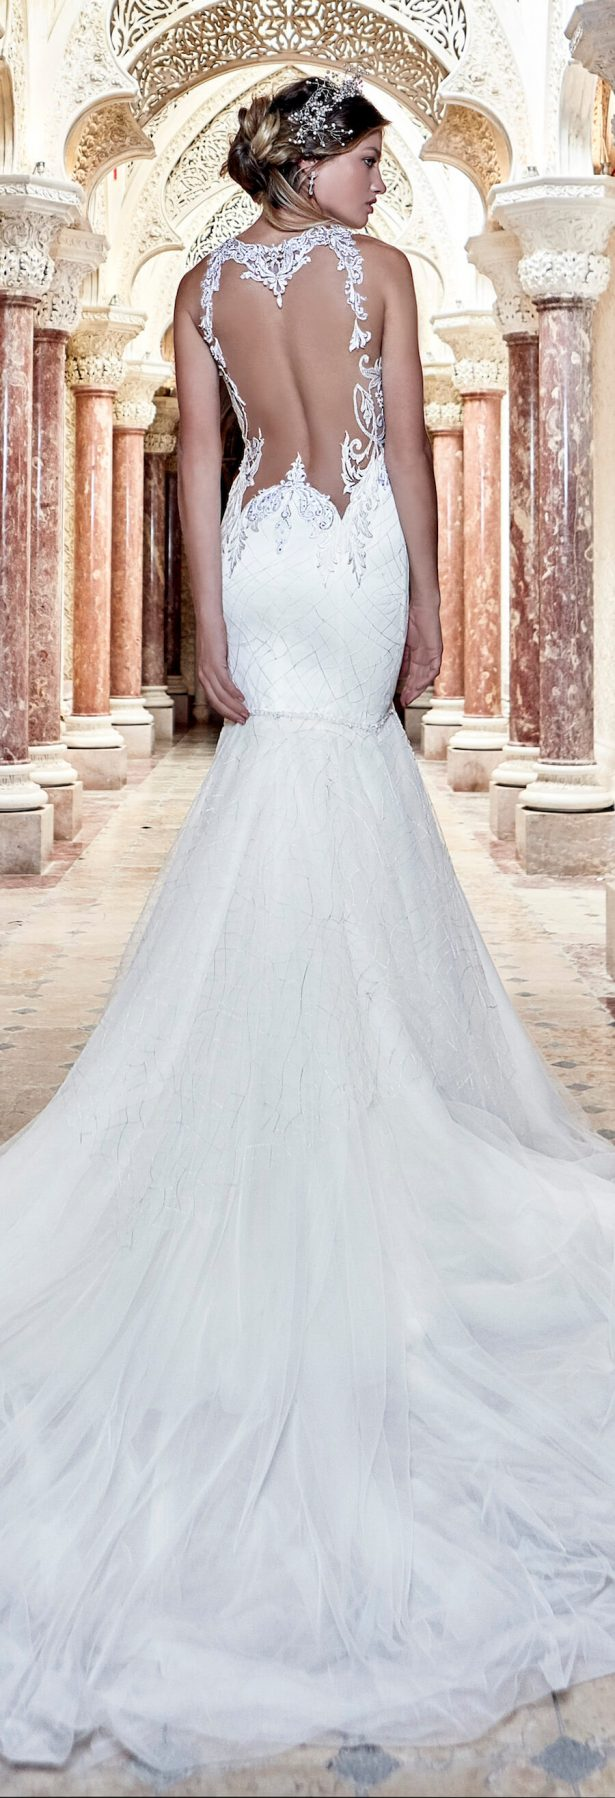 Slay Worthy Wedding Dresses from Solo Merav